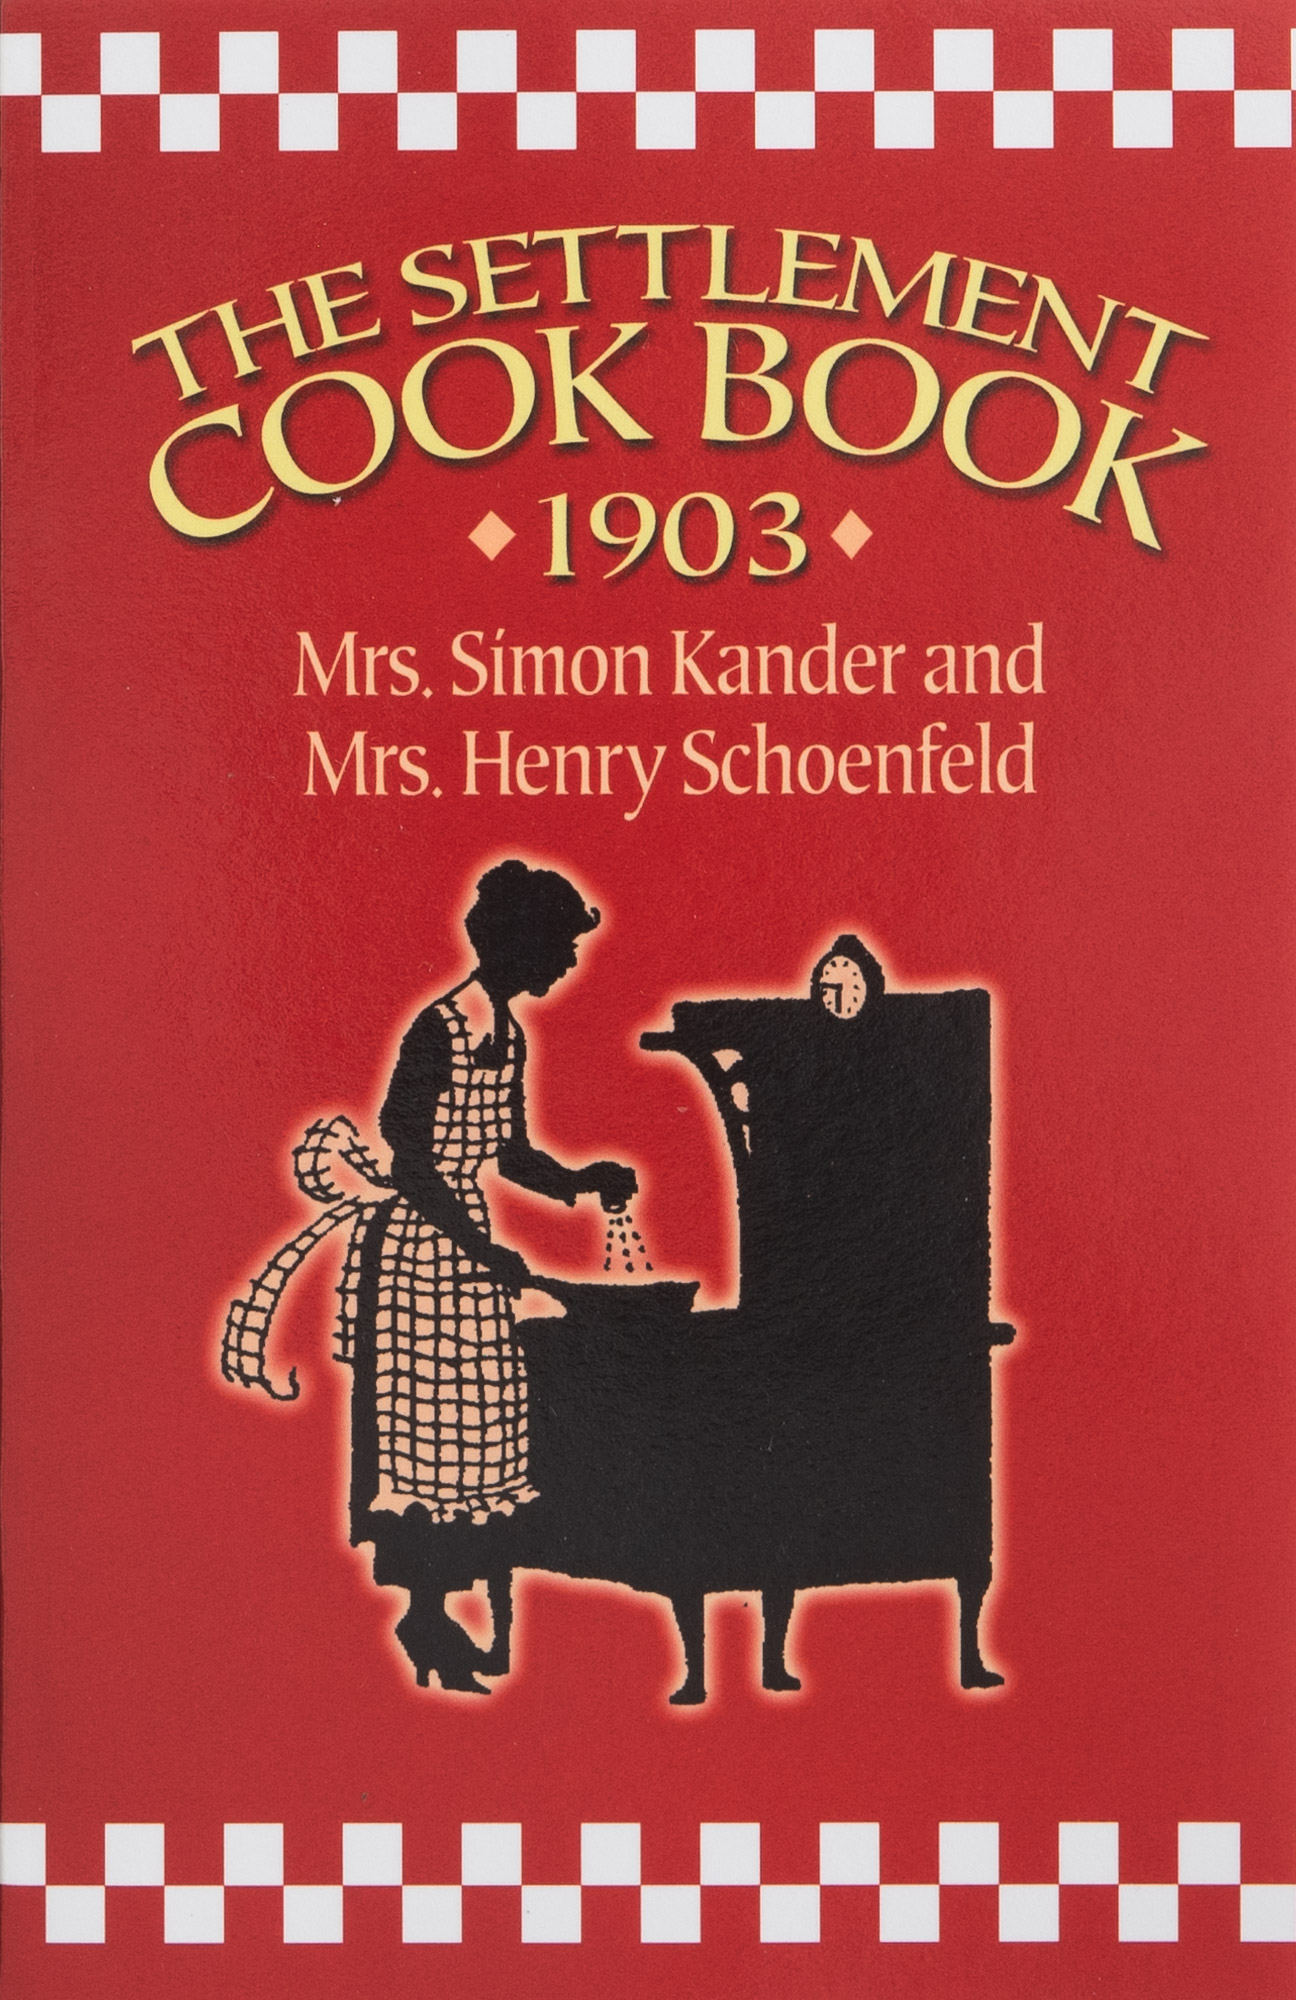 The Cover of The Settlement Cookbook in the Asif Library